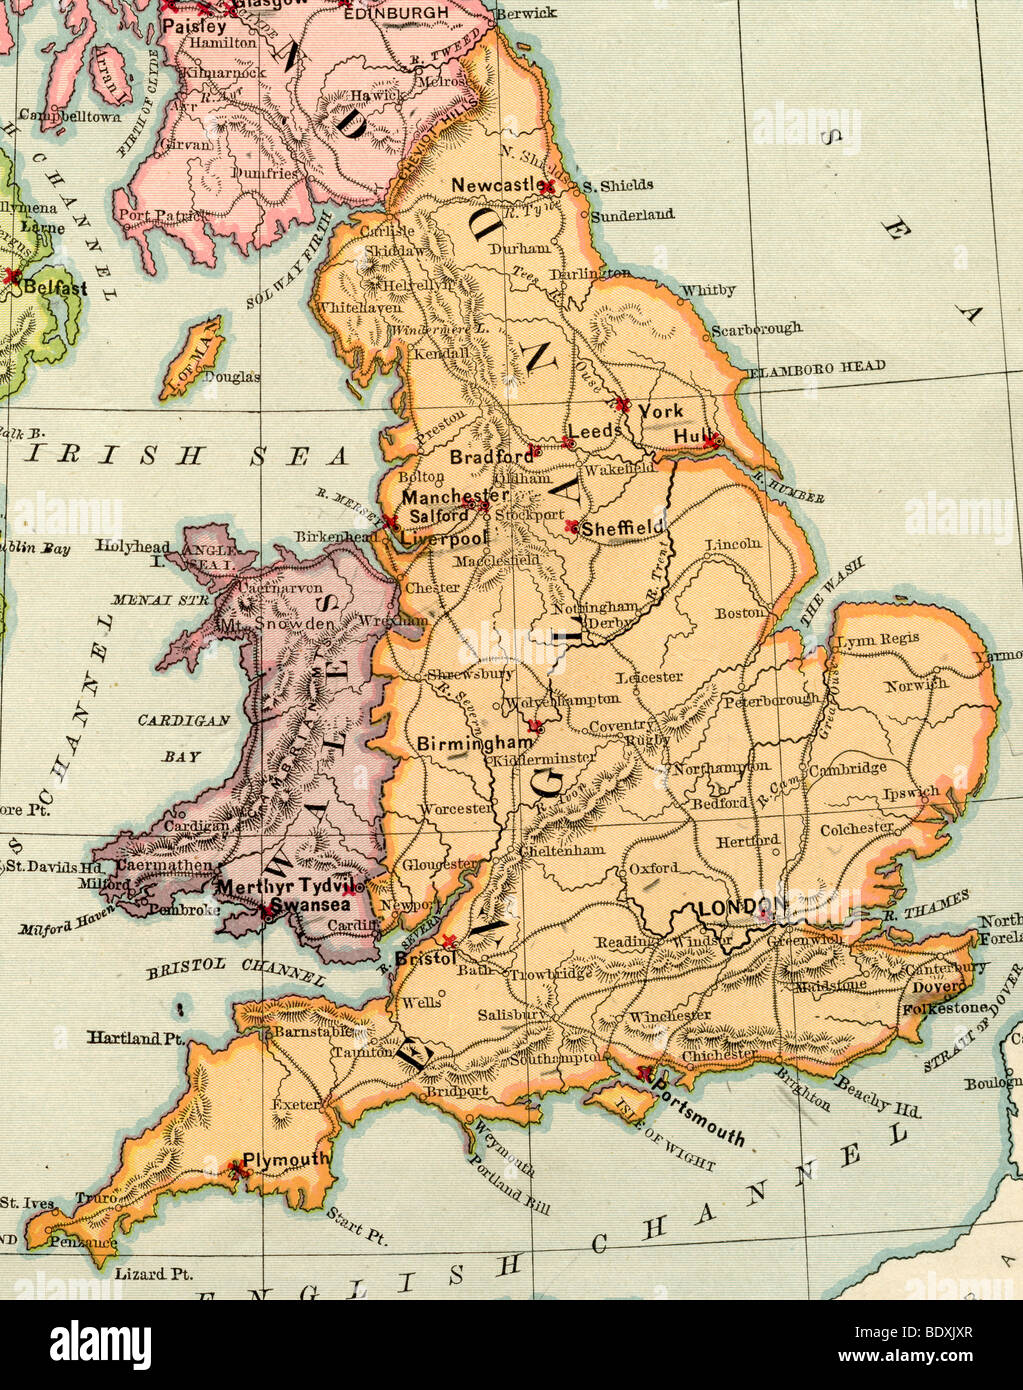 Original Old Map Of England And Wales From Geography Textbook - Map of england